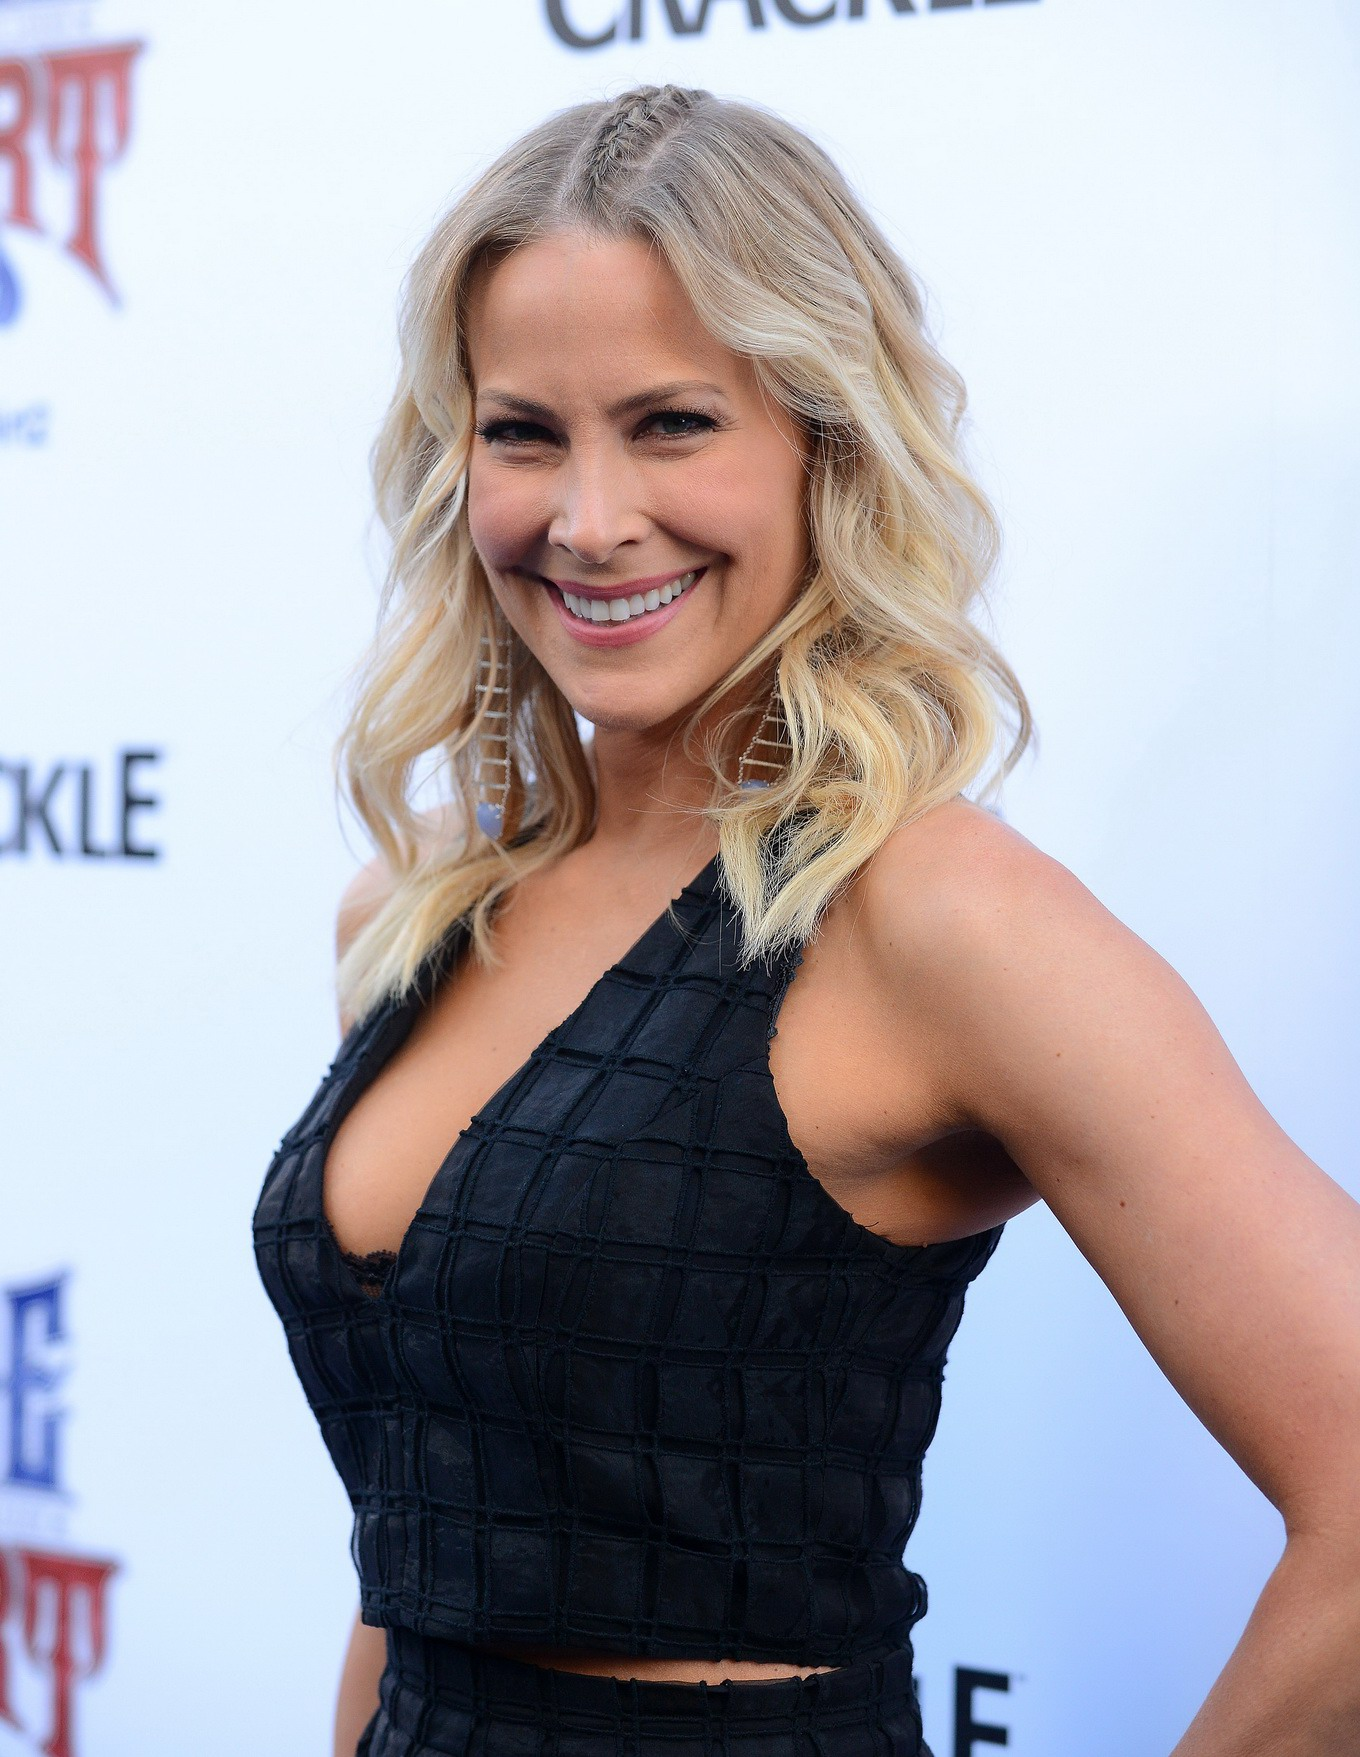 Brittany Daniel showing huge cleavage in a hot black dress ... Brittany Daniel